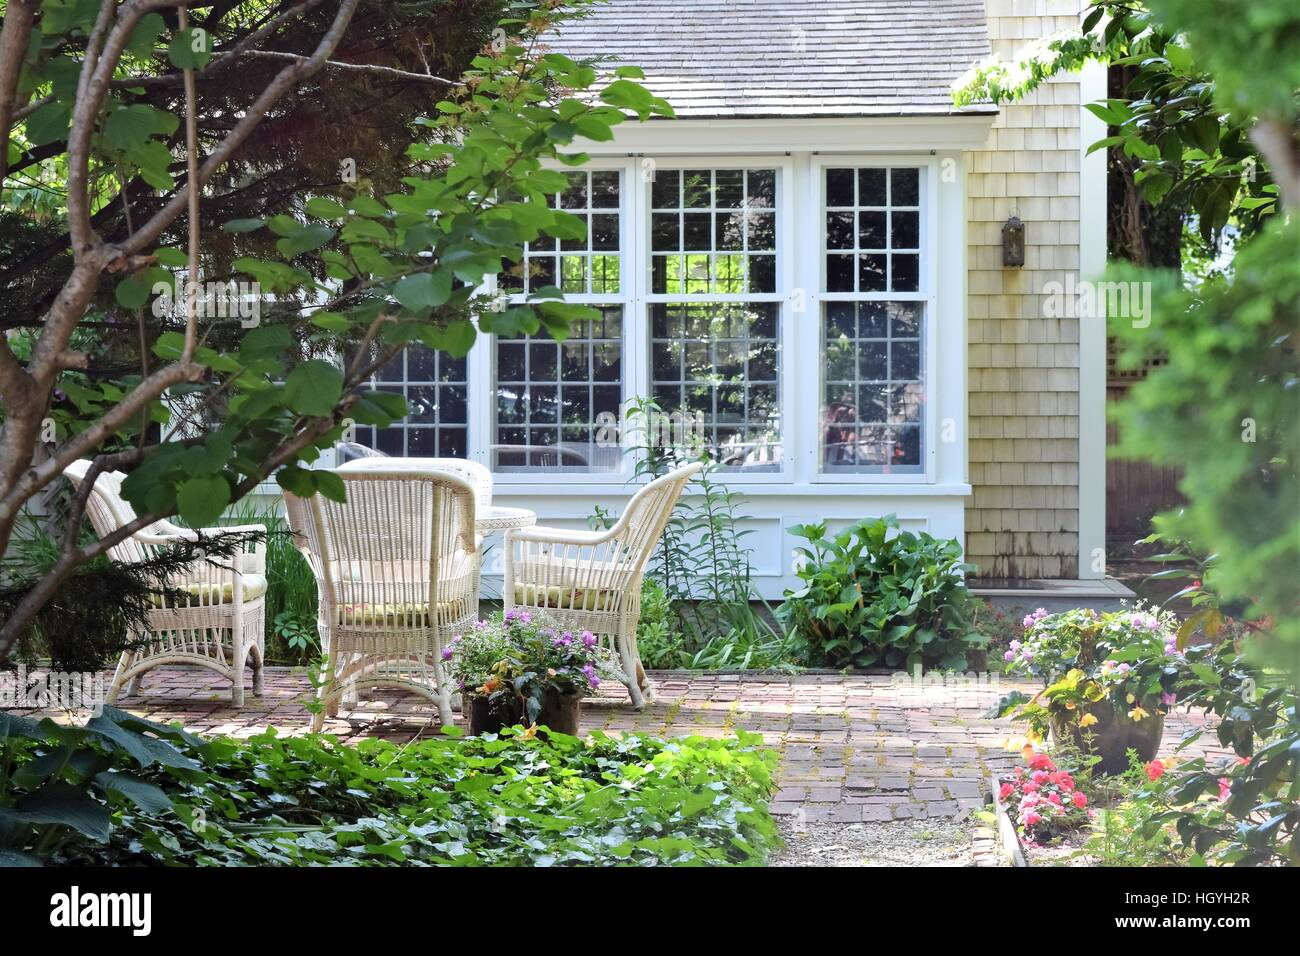 cape cod style home photos cape cod style home images alamy rh alamyimages fr Tudor Style Homes Craftsman- style Home